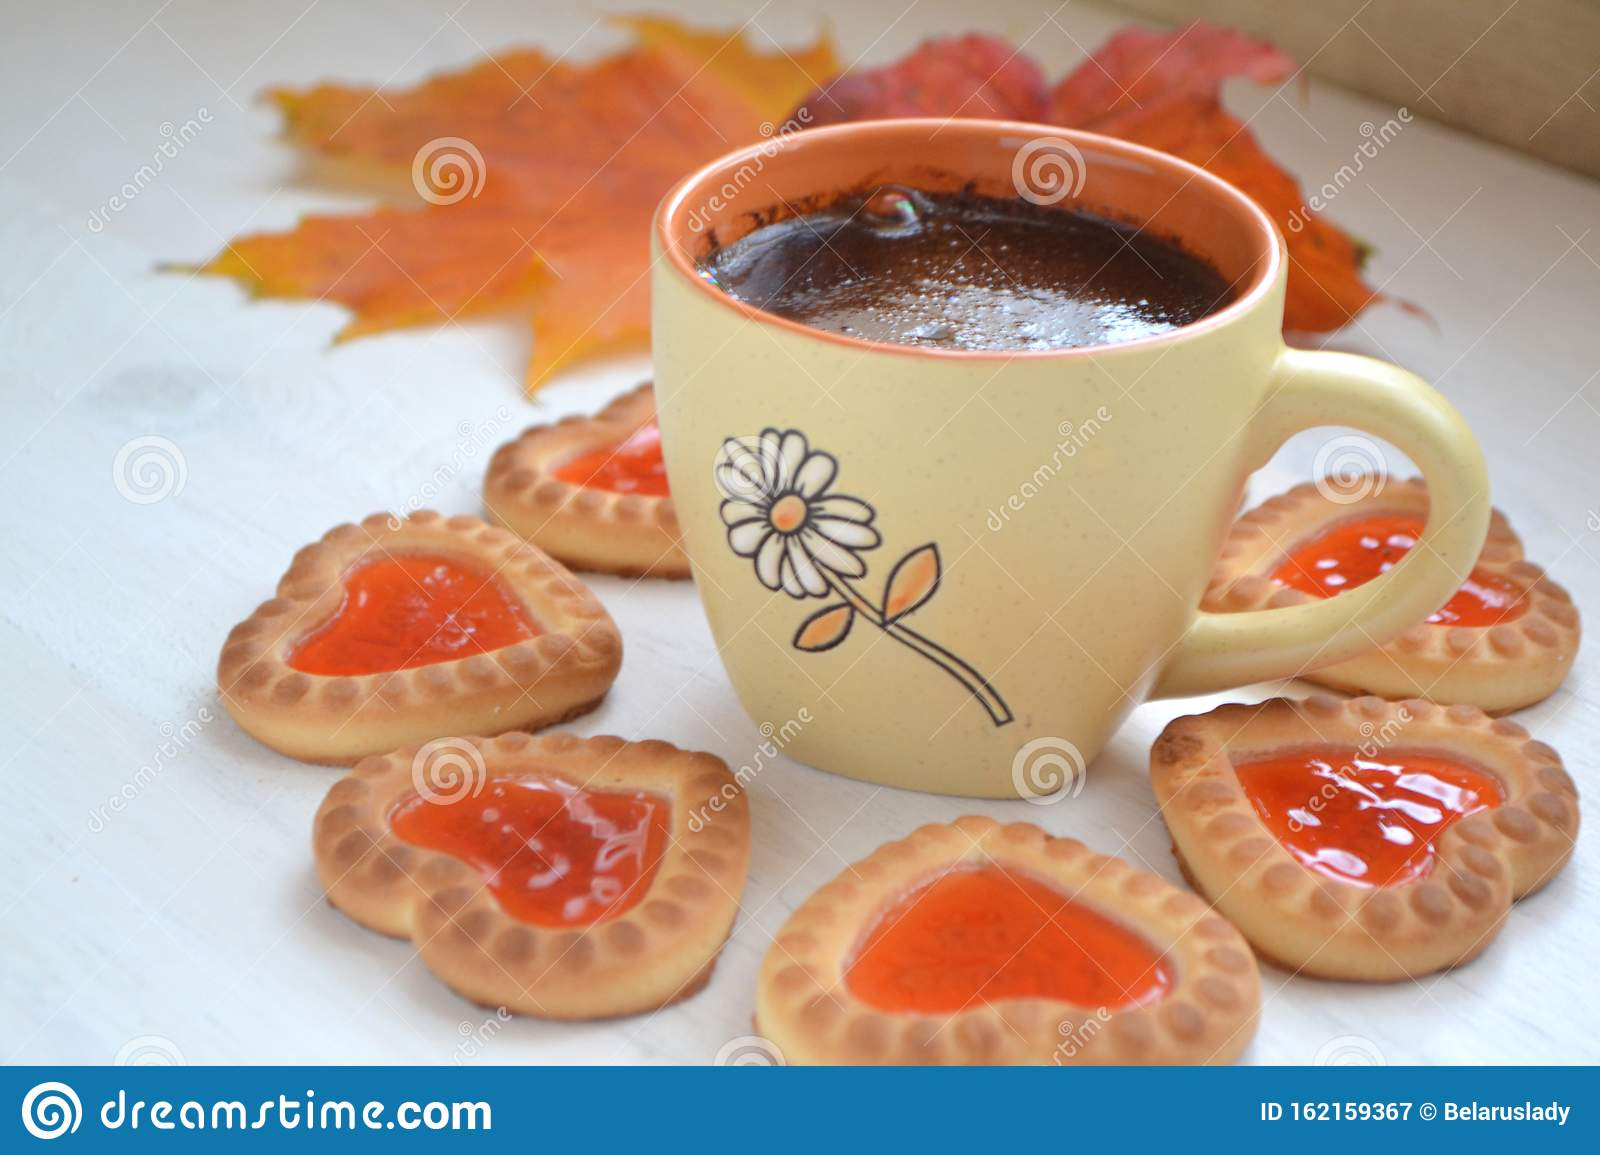 Cookies In Form Of Little Heart And Autumn Maple Leaf With Coffee Cup On Old Wooden Background Stock Image Image Of Shape Fall 162159367